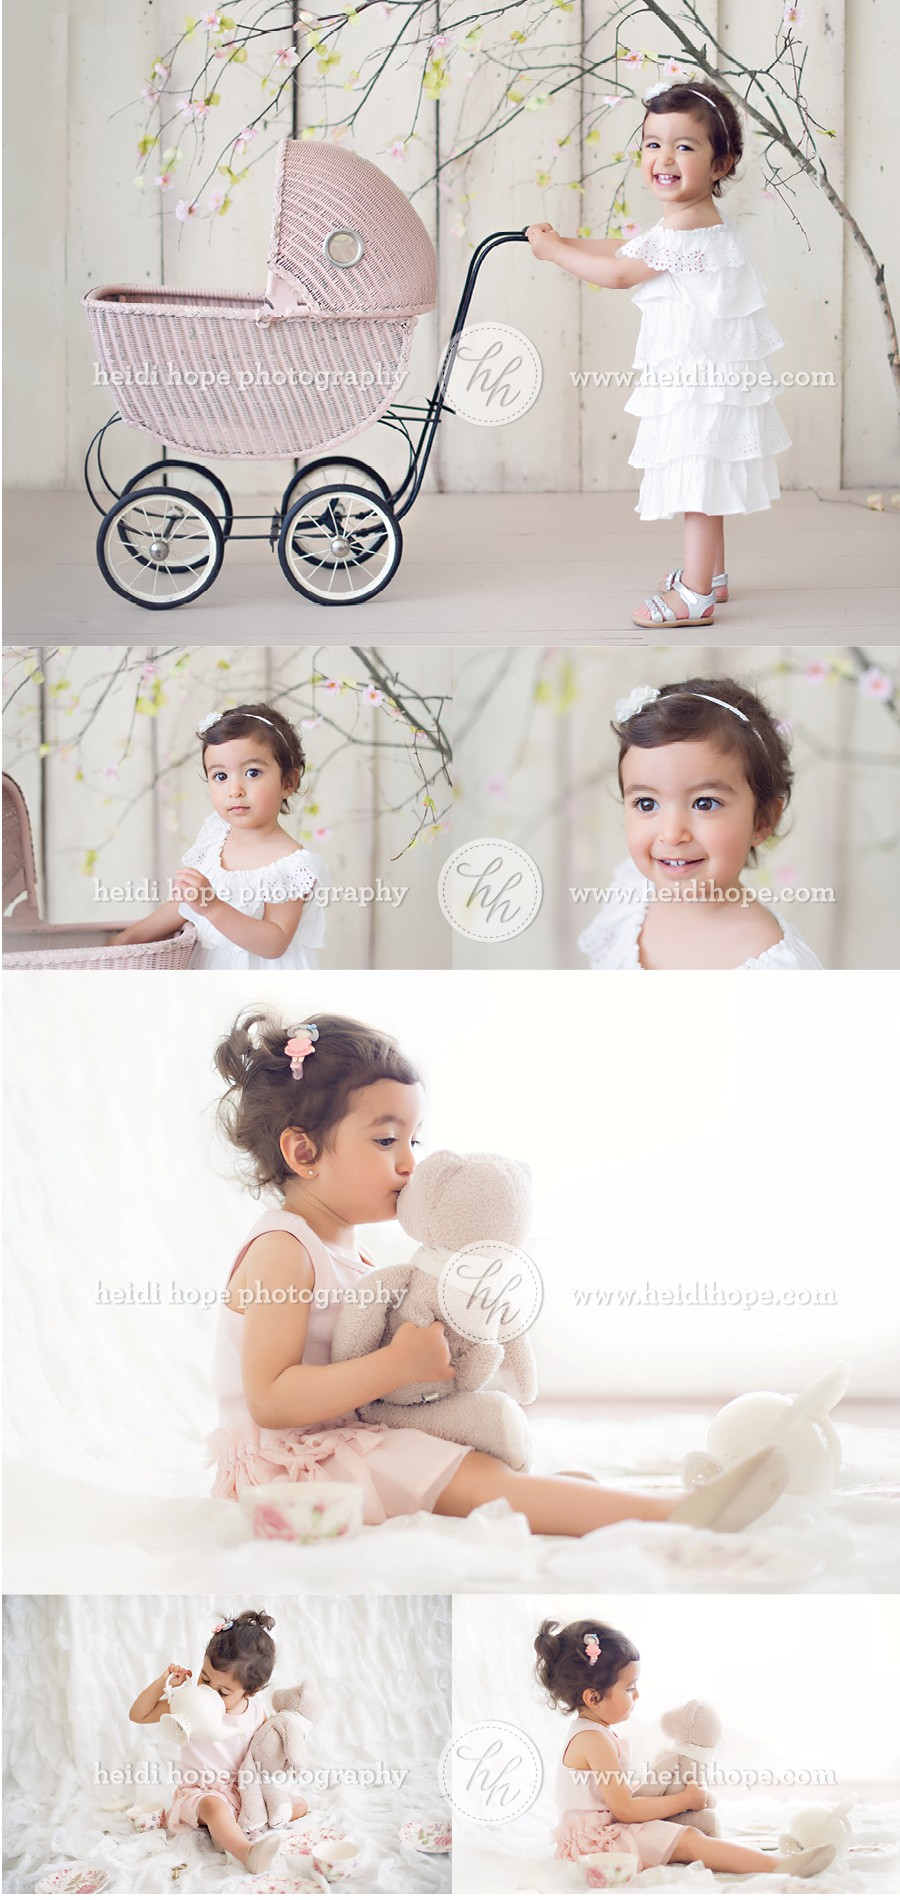 Tea Party and Carriage Photo Shoot, Toddler Studio Photoshoot by Heidi Hope Photography